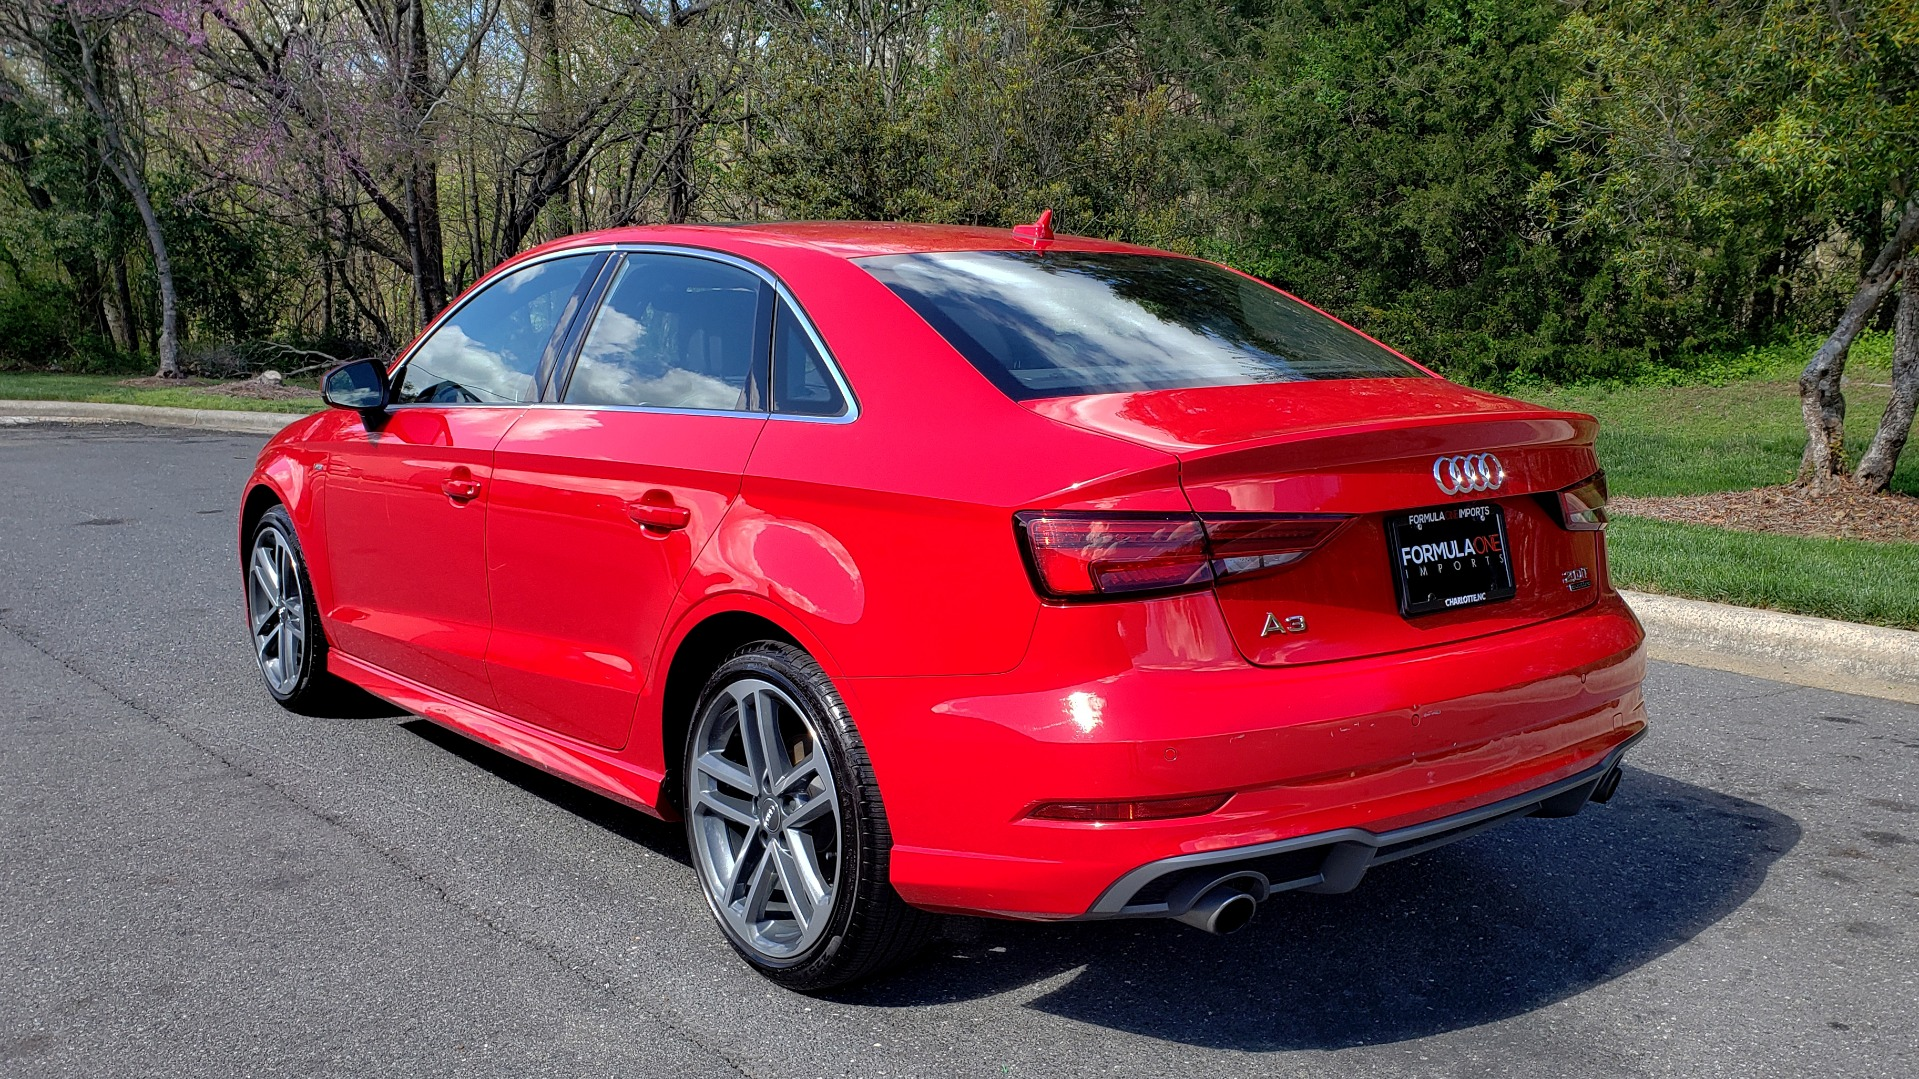 Used 2017 Audi A3 SEDAN PREMIUM PLUS / S-TRONIC / NAV / TECH / SUNROOF / REARVIEW for sale Sold at Formula Imports in Charlotte NC 28227 3